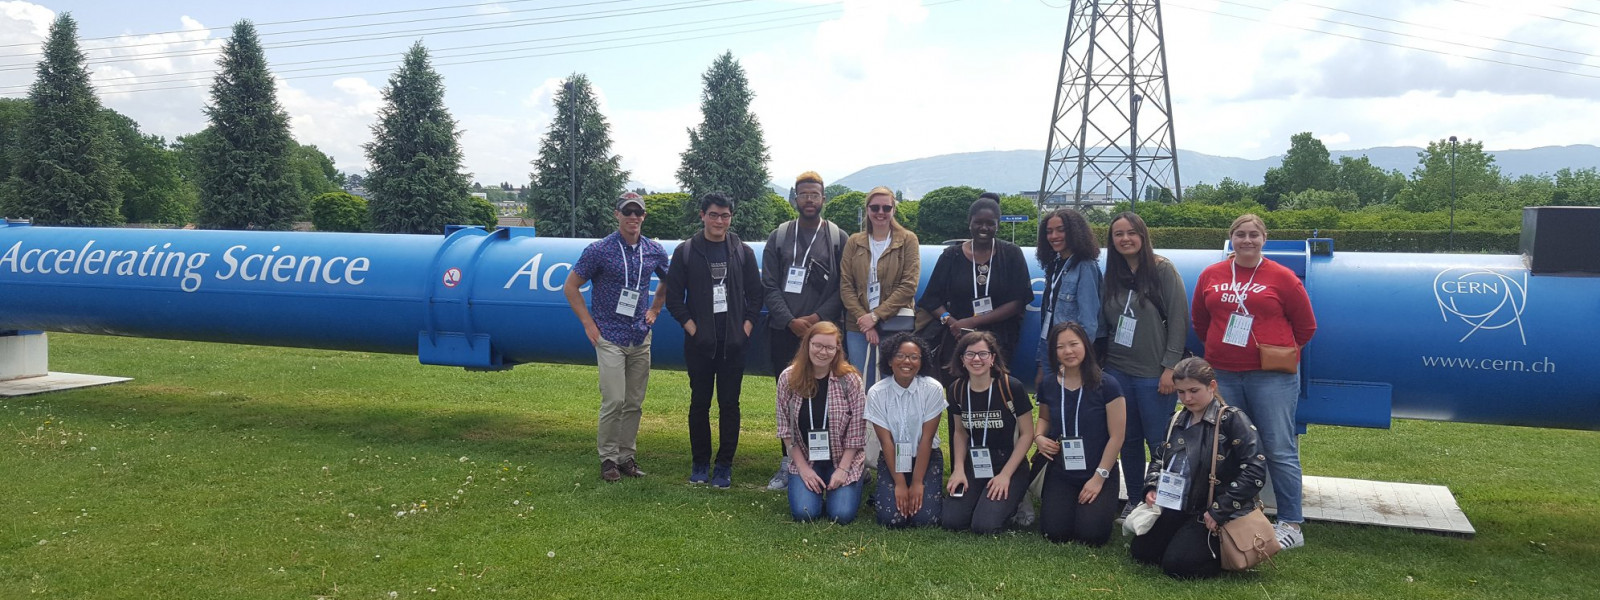 The group tours CERN.